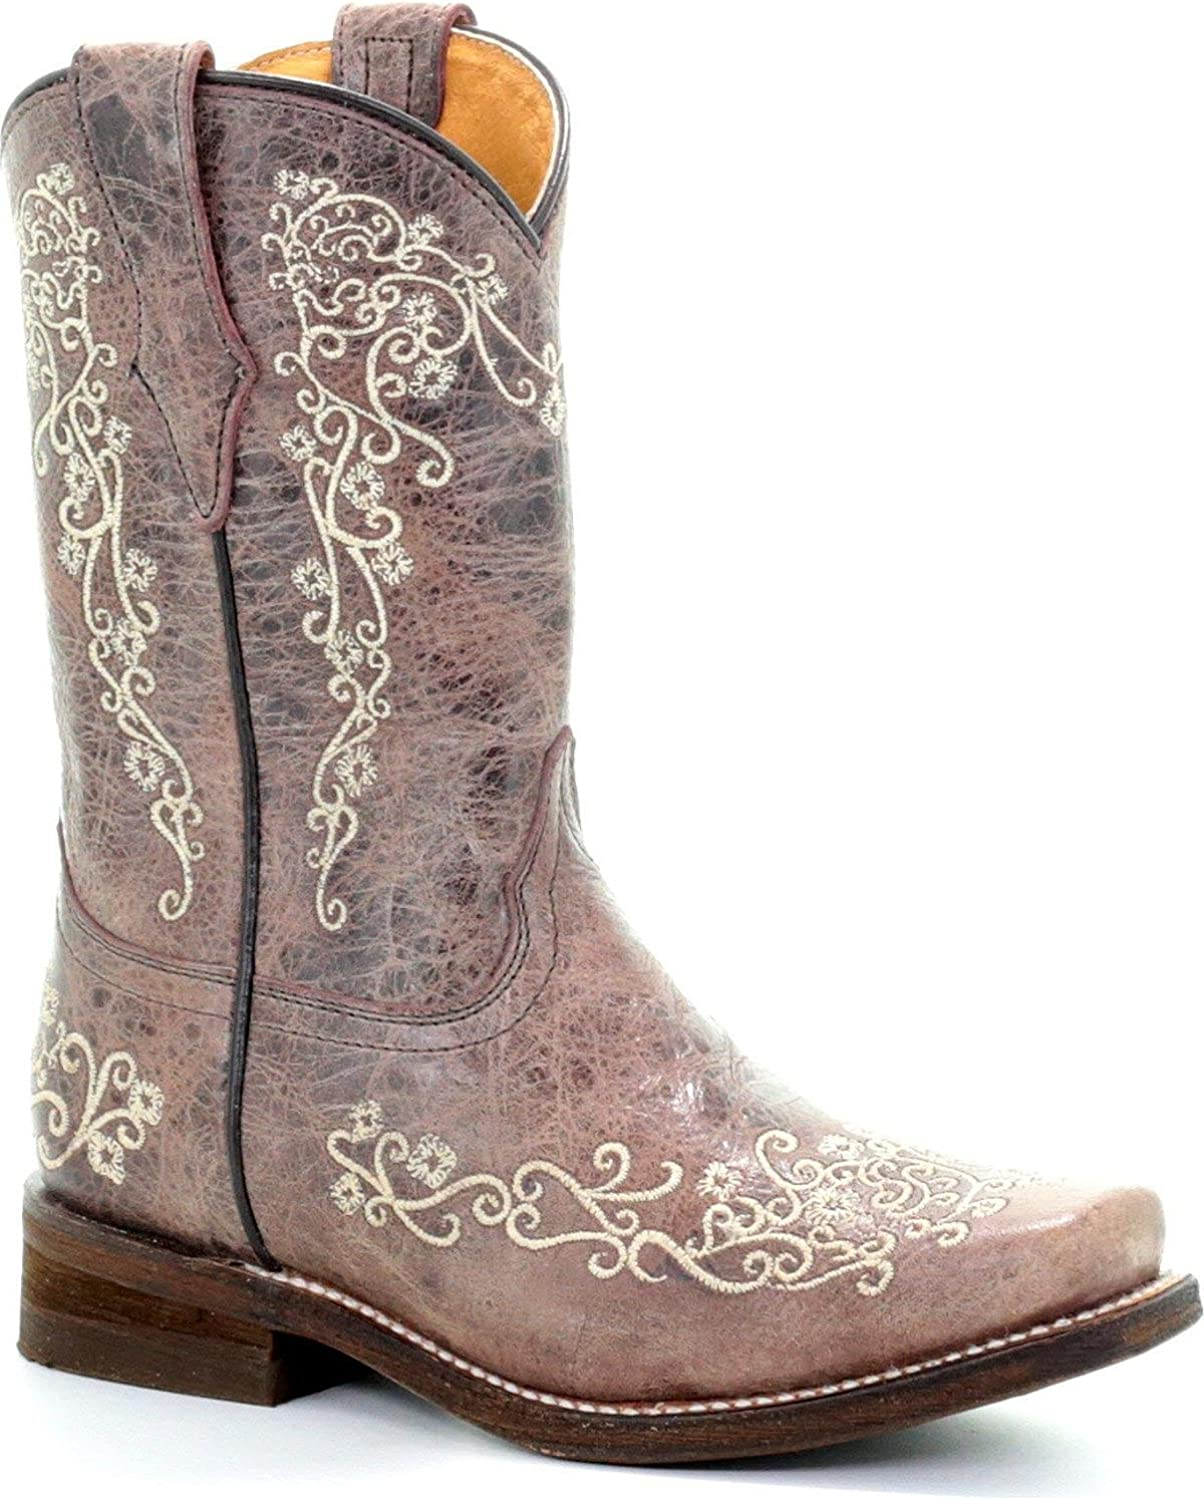 Corral Boys Crater Bone Scroll Embroidery Boot Square Toe Brown 1.5 D